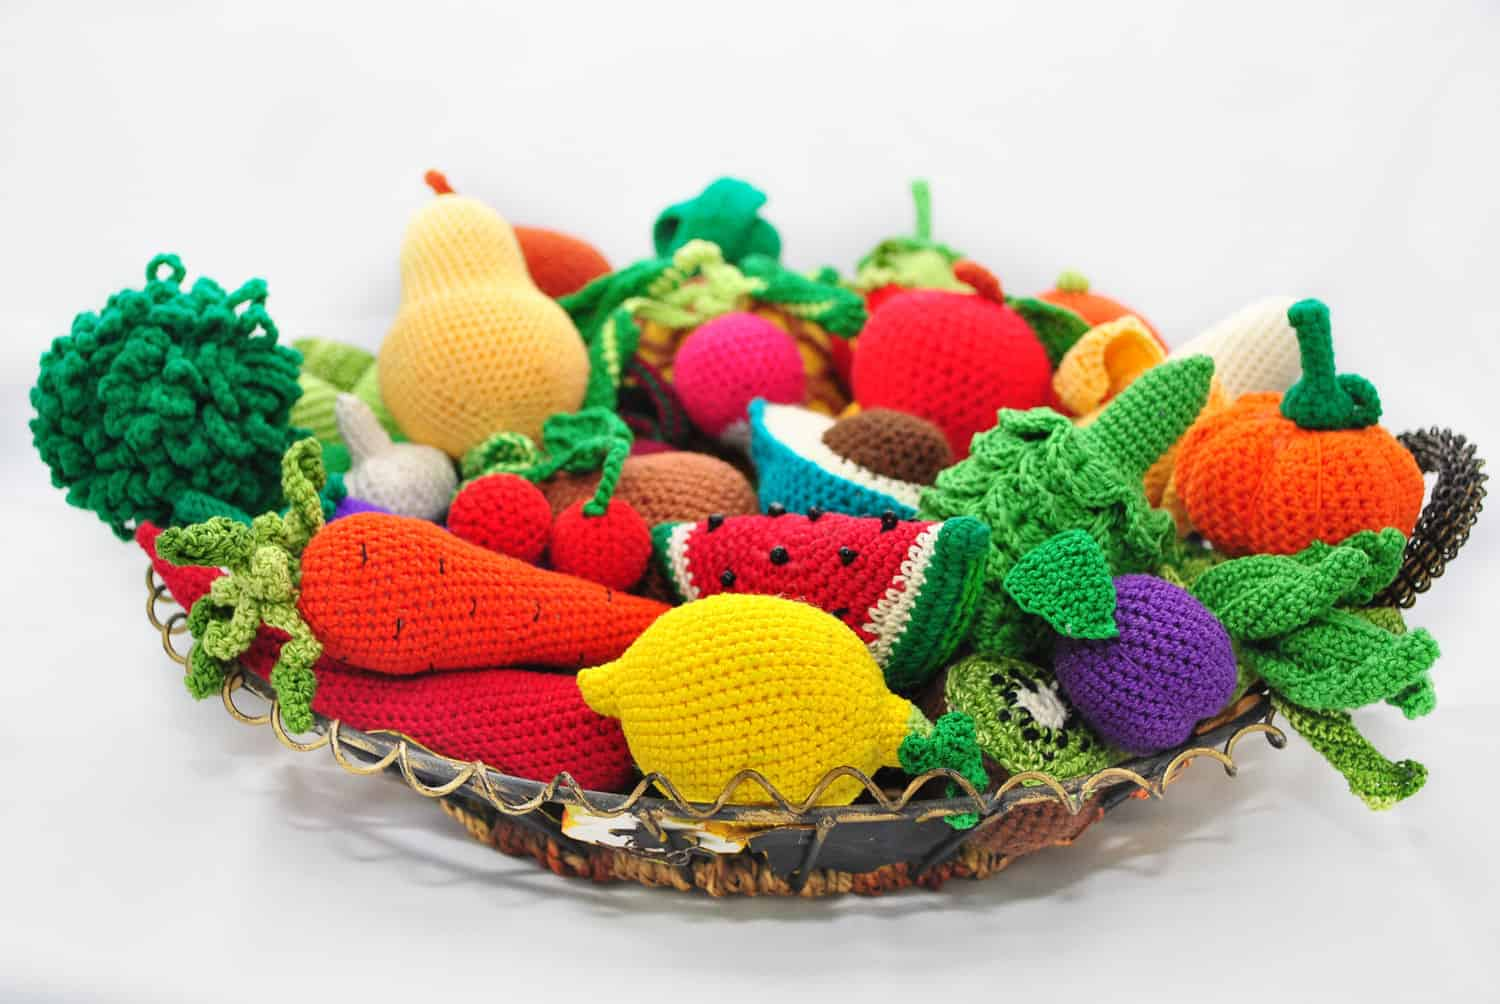 Crocheted fruit and veggie platter